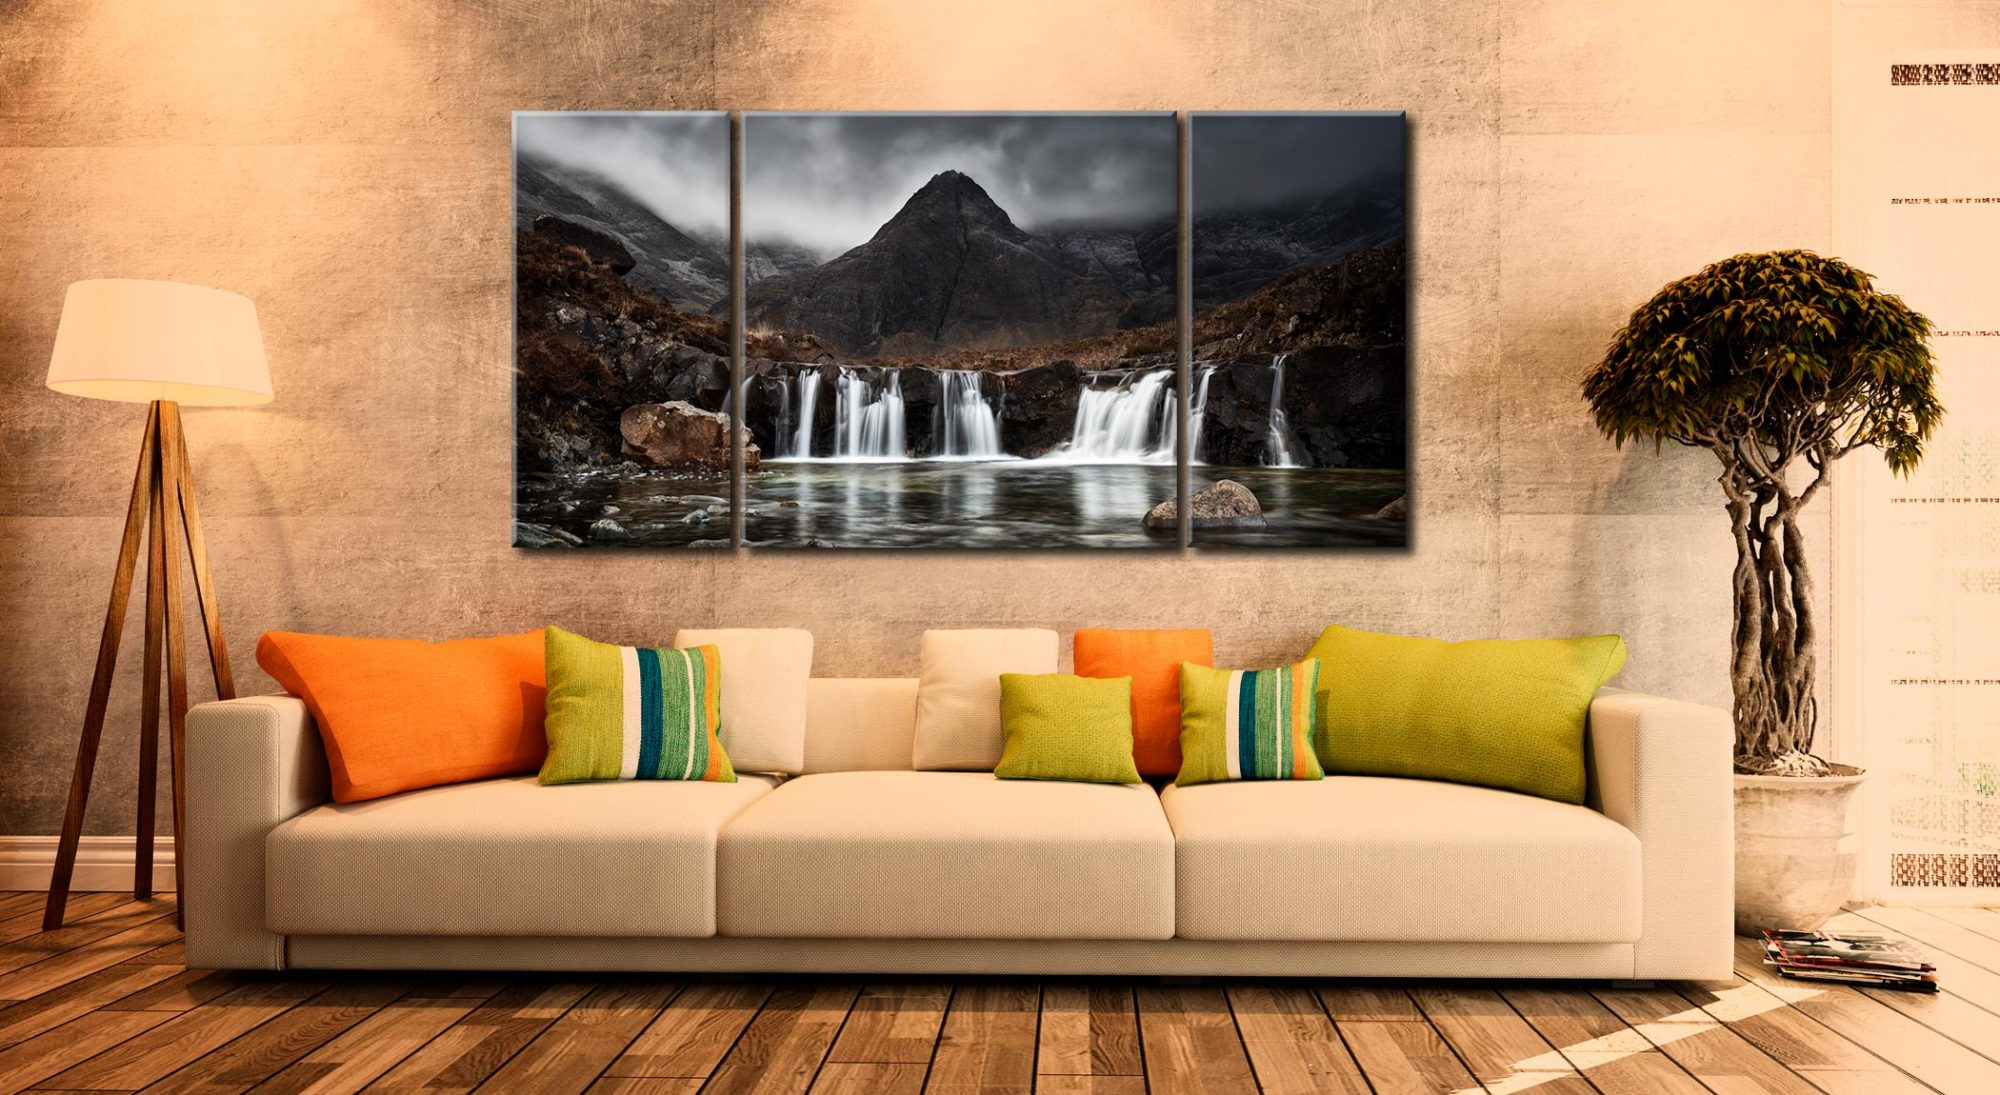 Fairy Pools Waterfall - 3 Panel Wide Centre Canvas on Wall